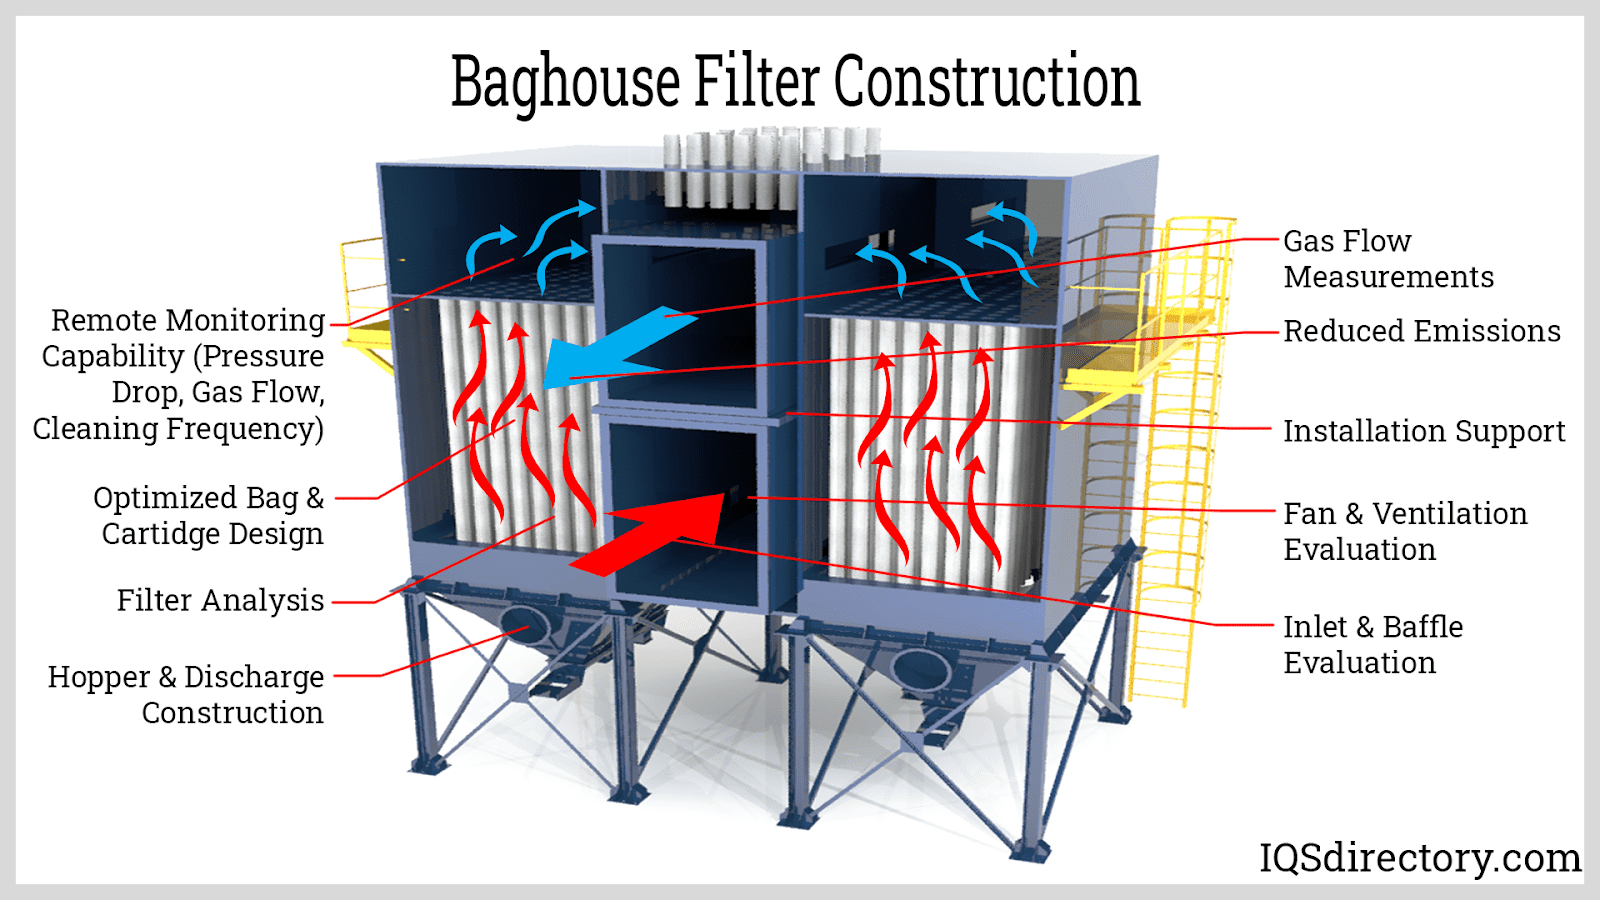 Baghouse Filter Construction